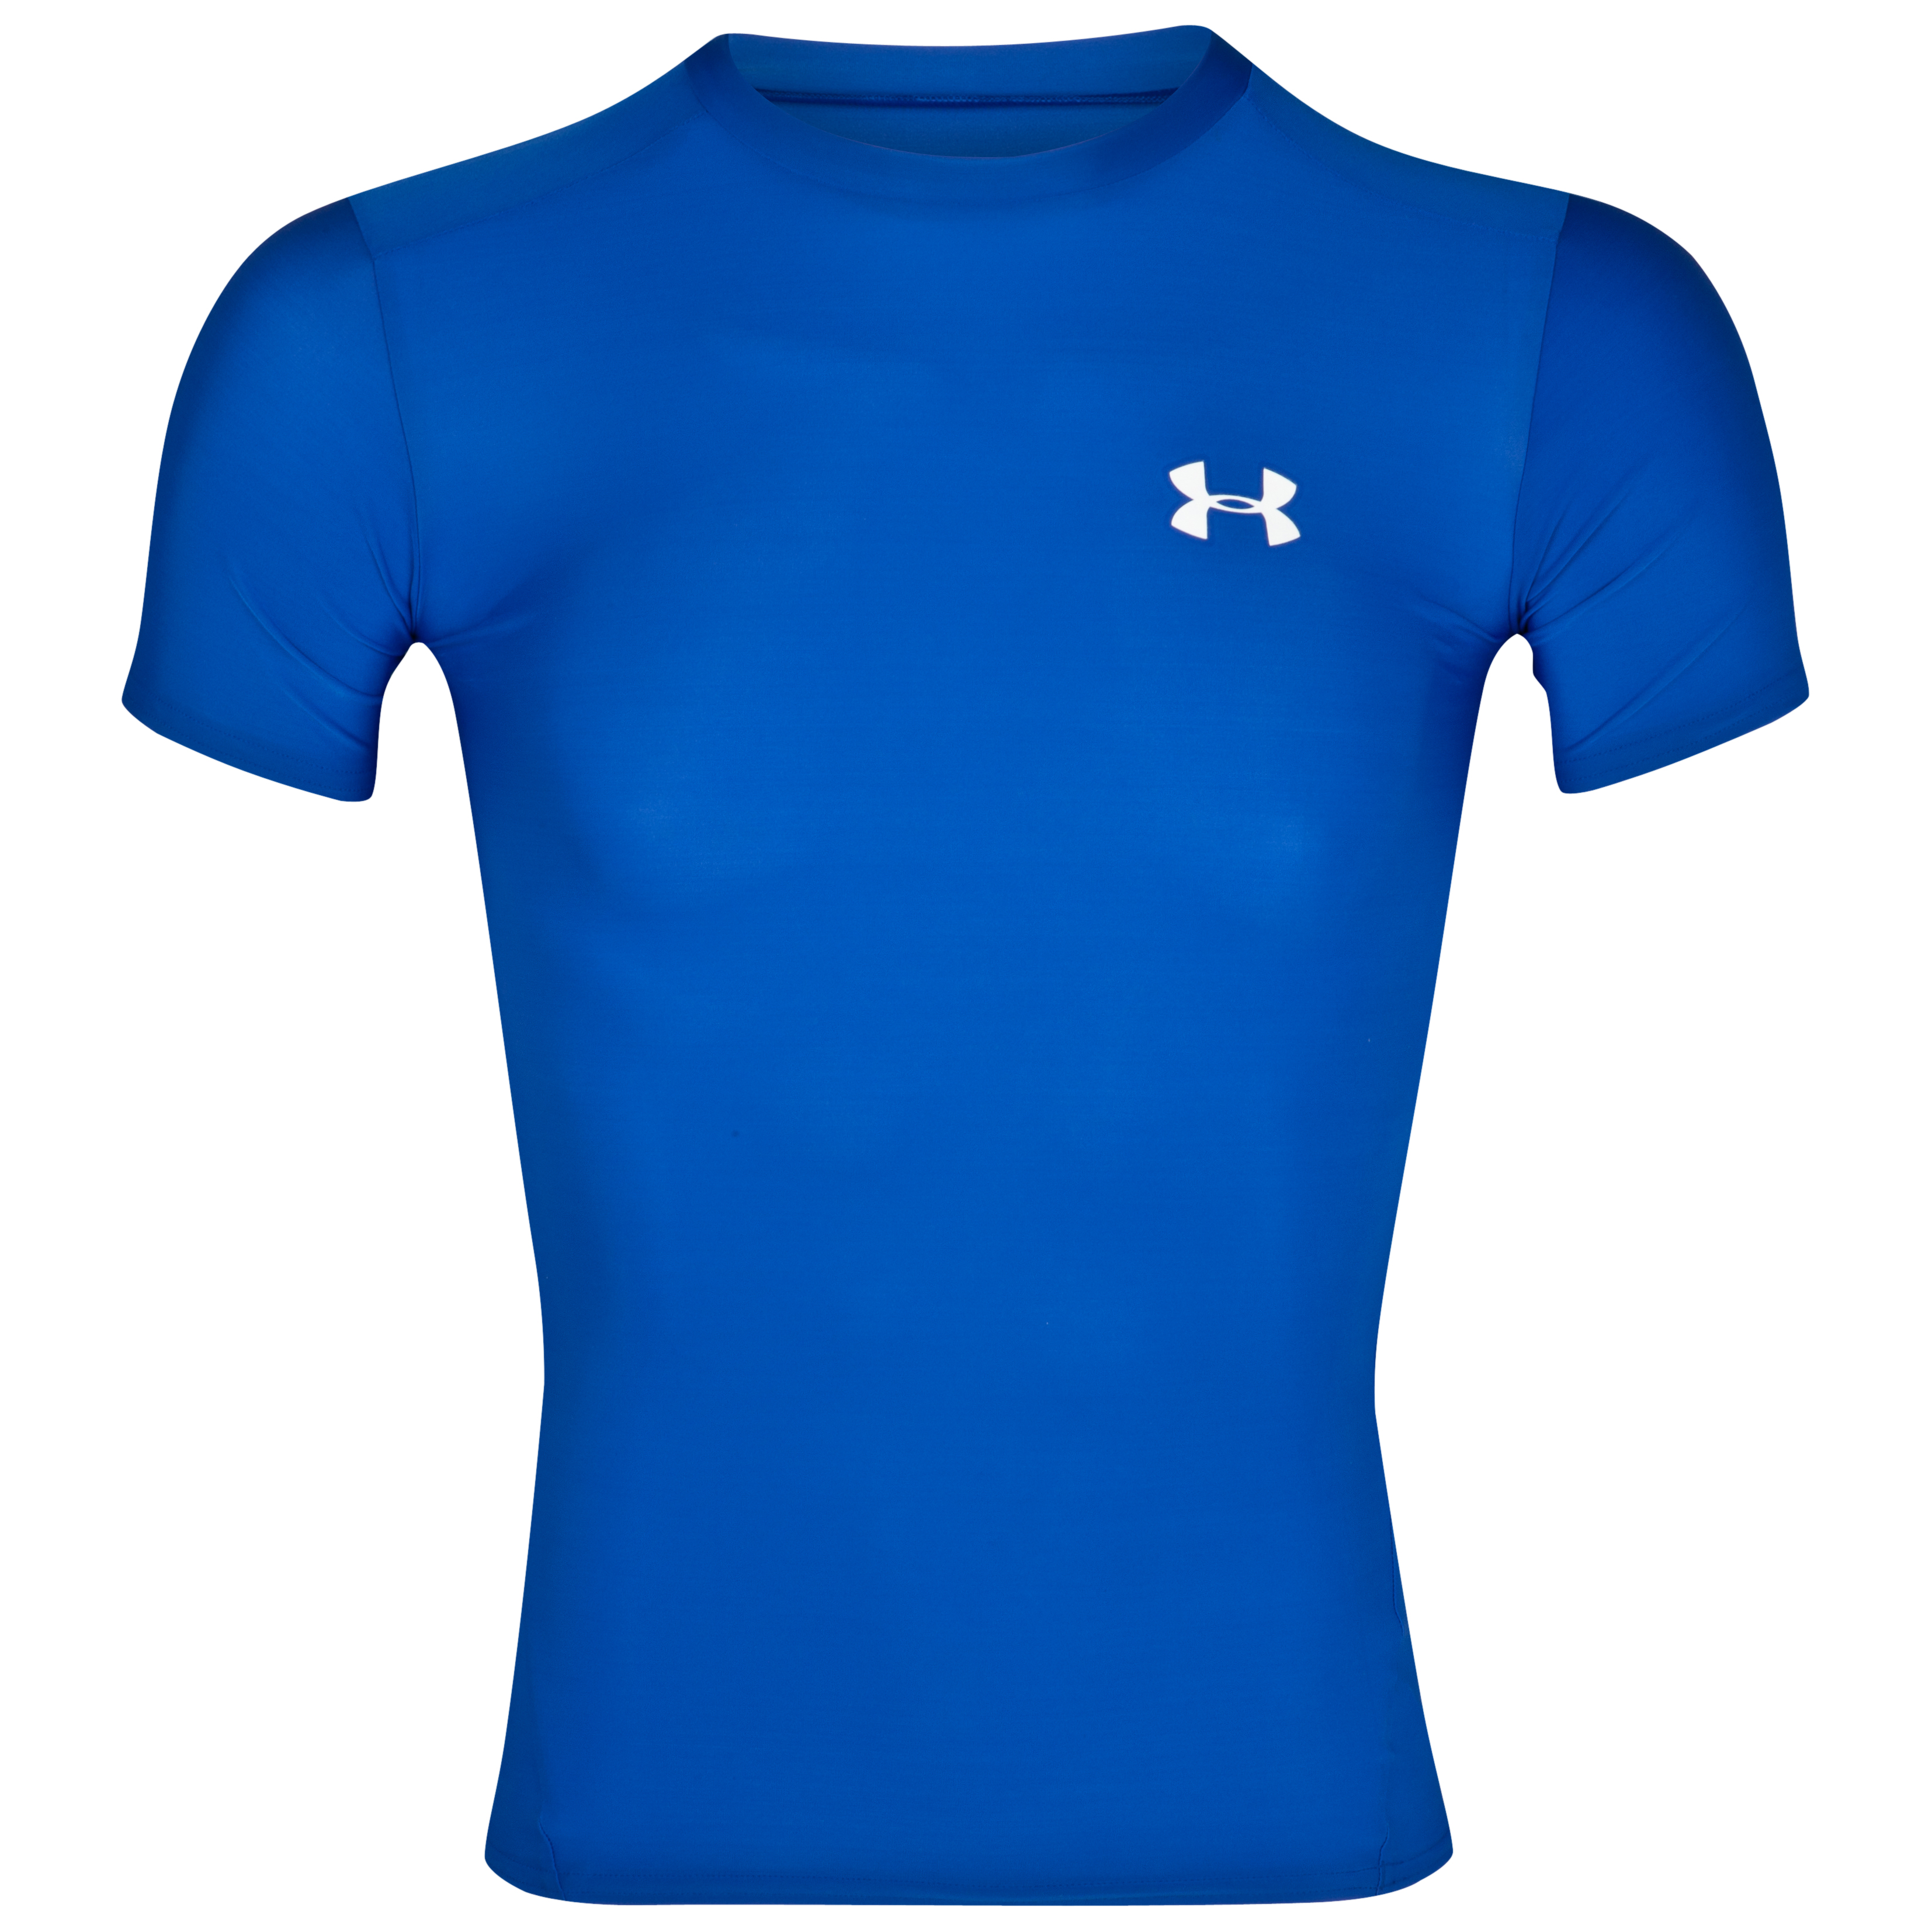 UnderArmour HeatGear Compression Top - Royal/White